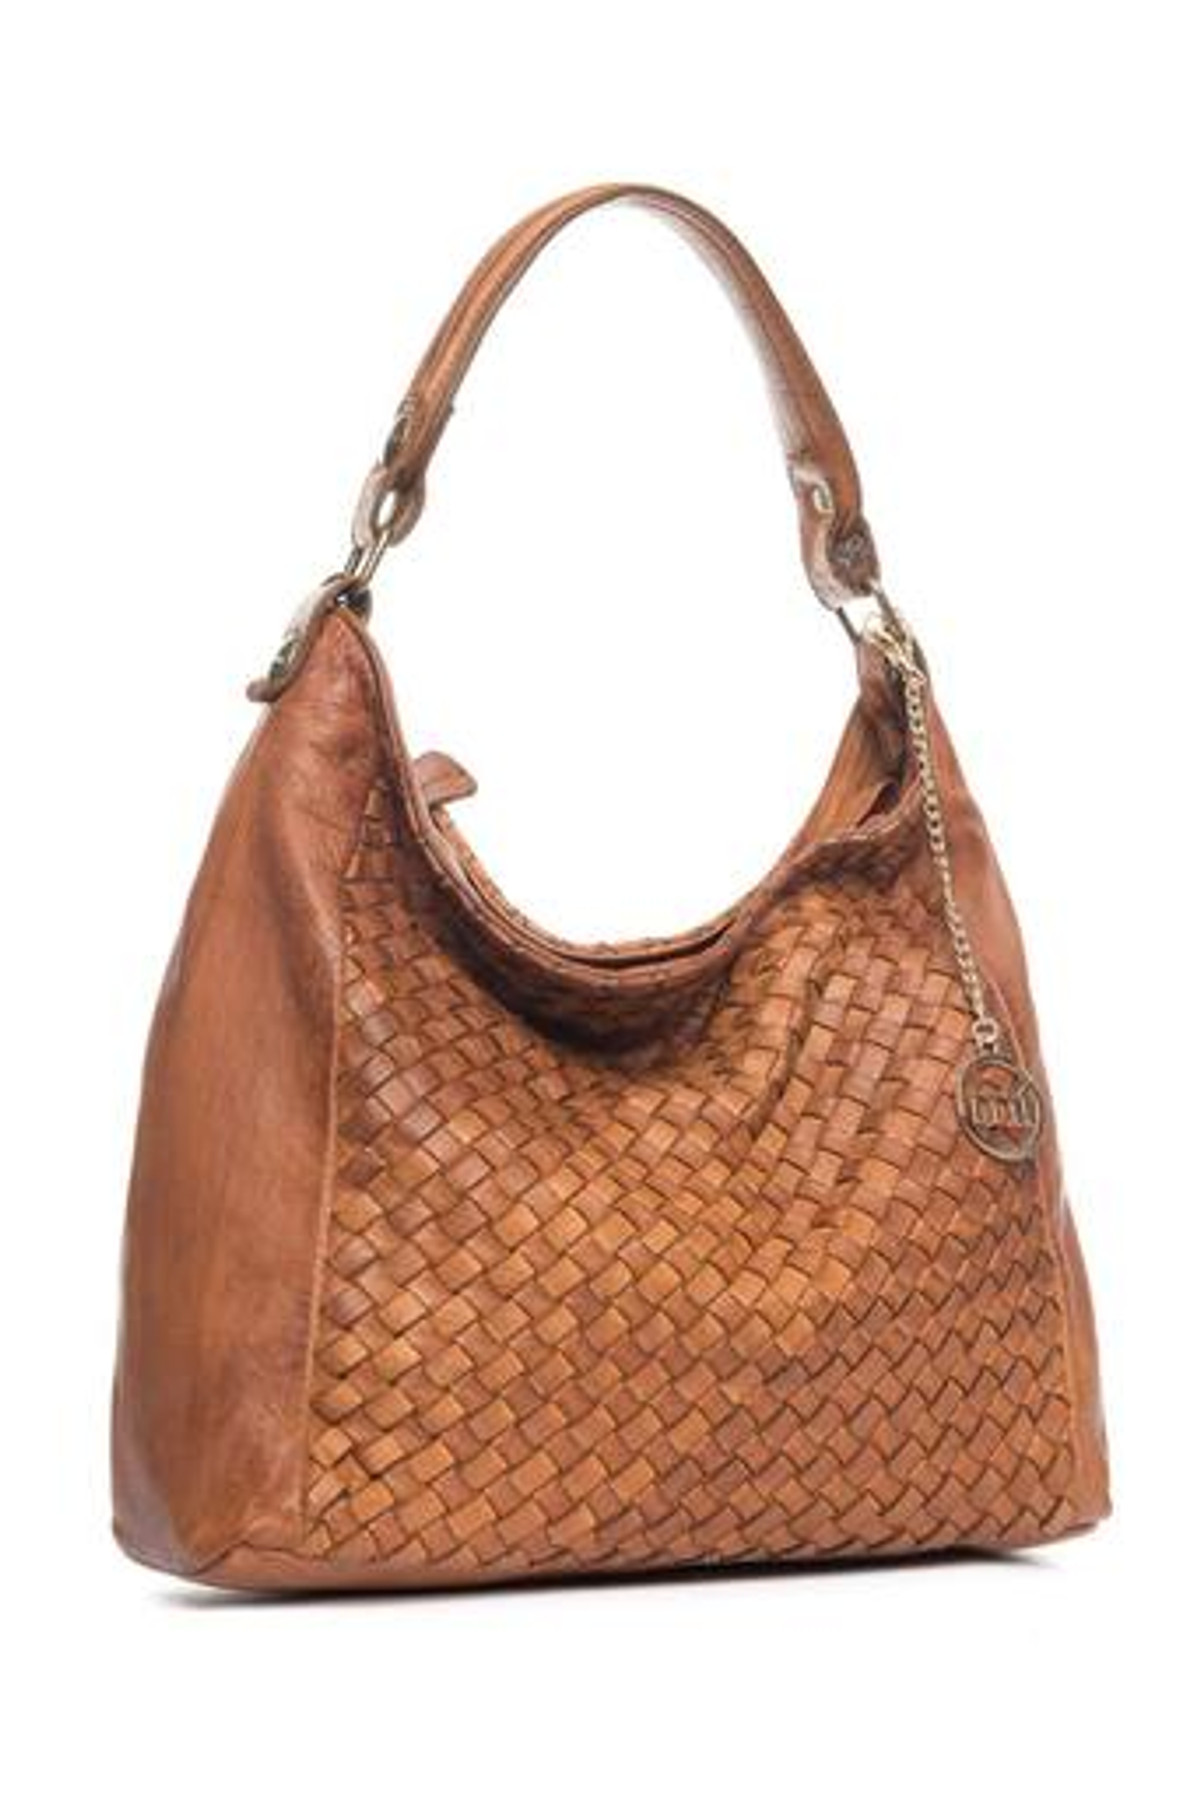 Mia Tomazzi Italian Made Leather Bag WB134297